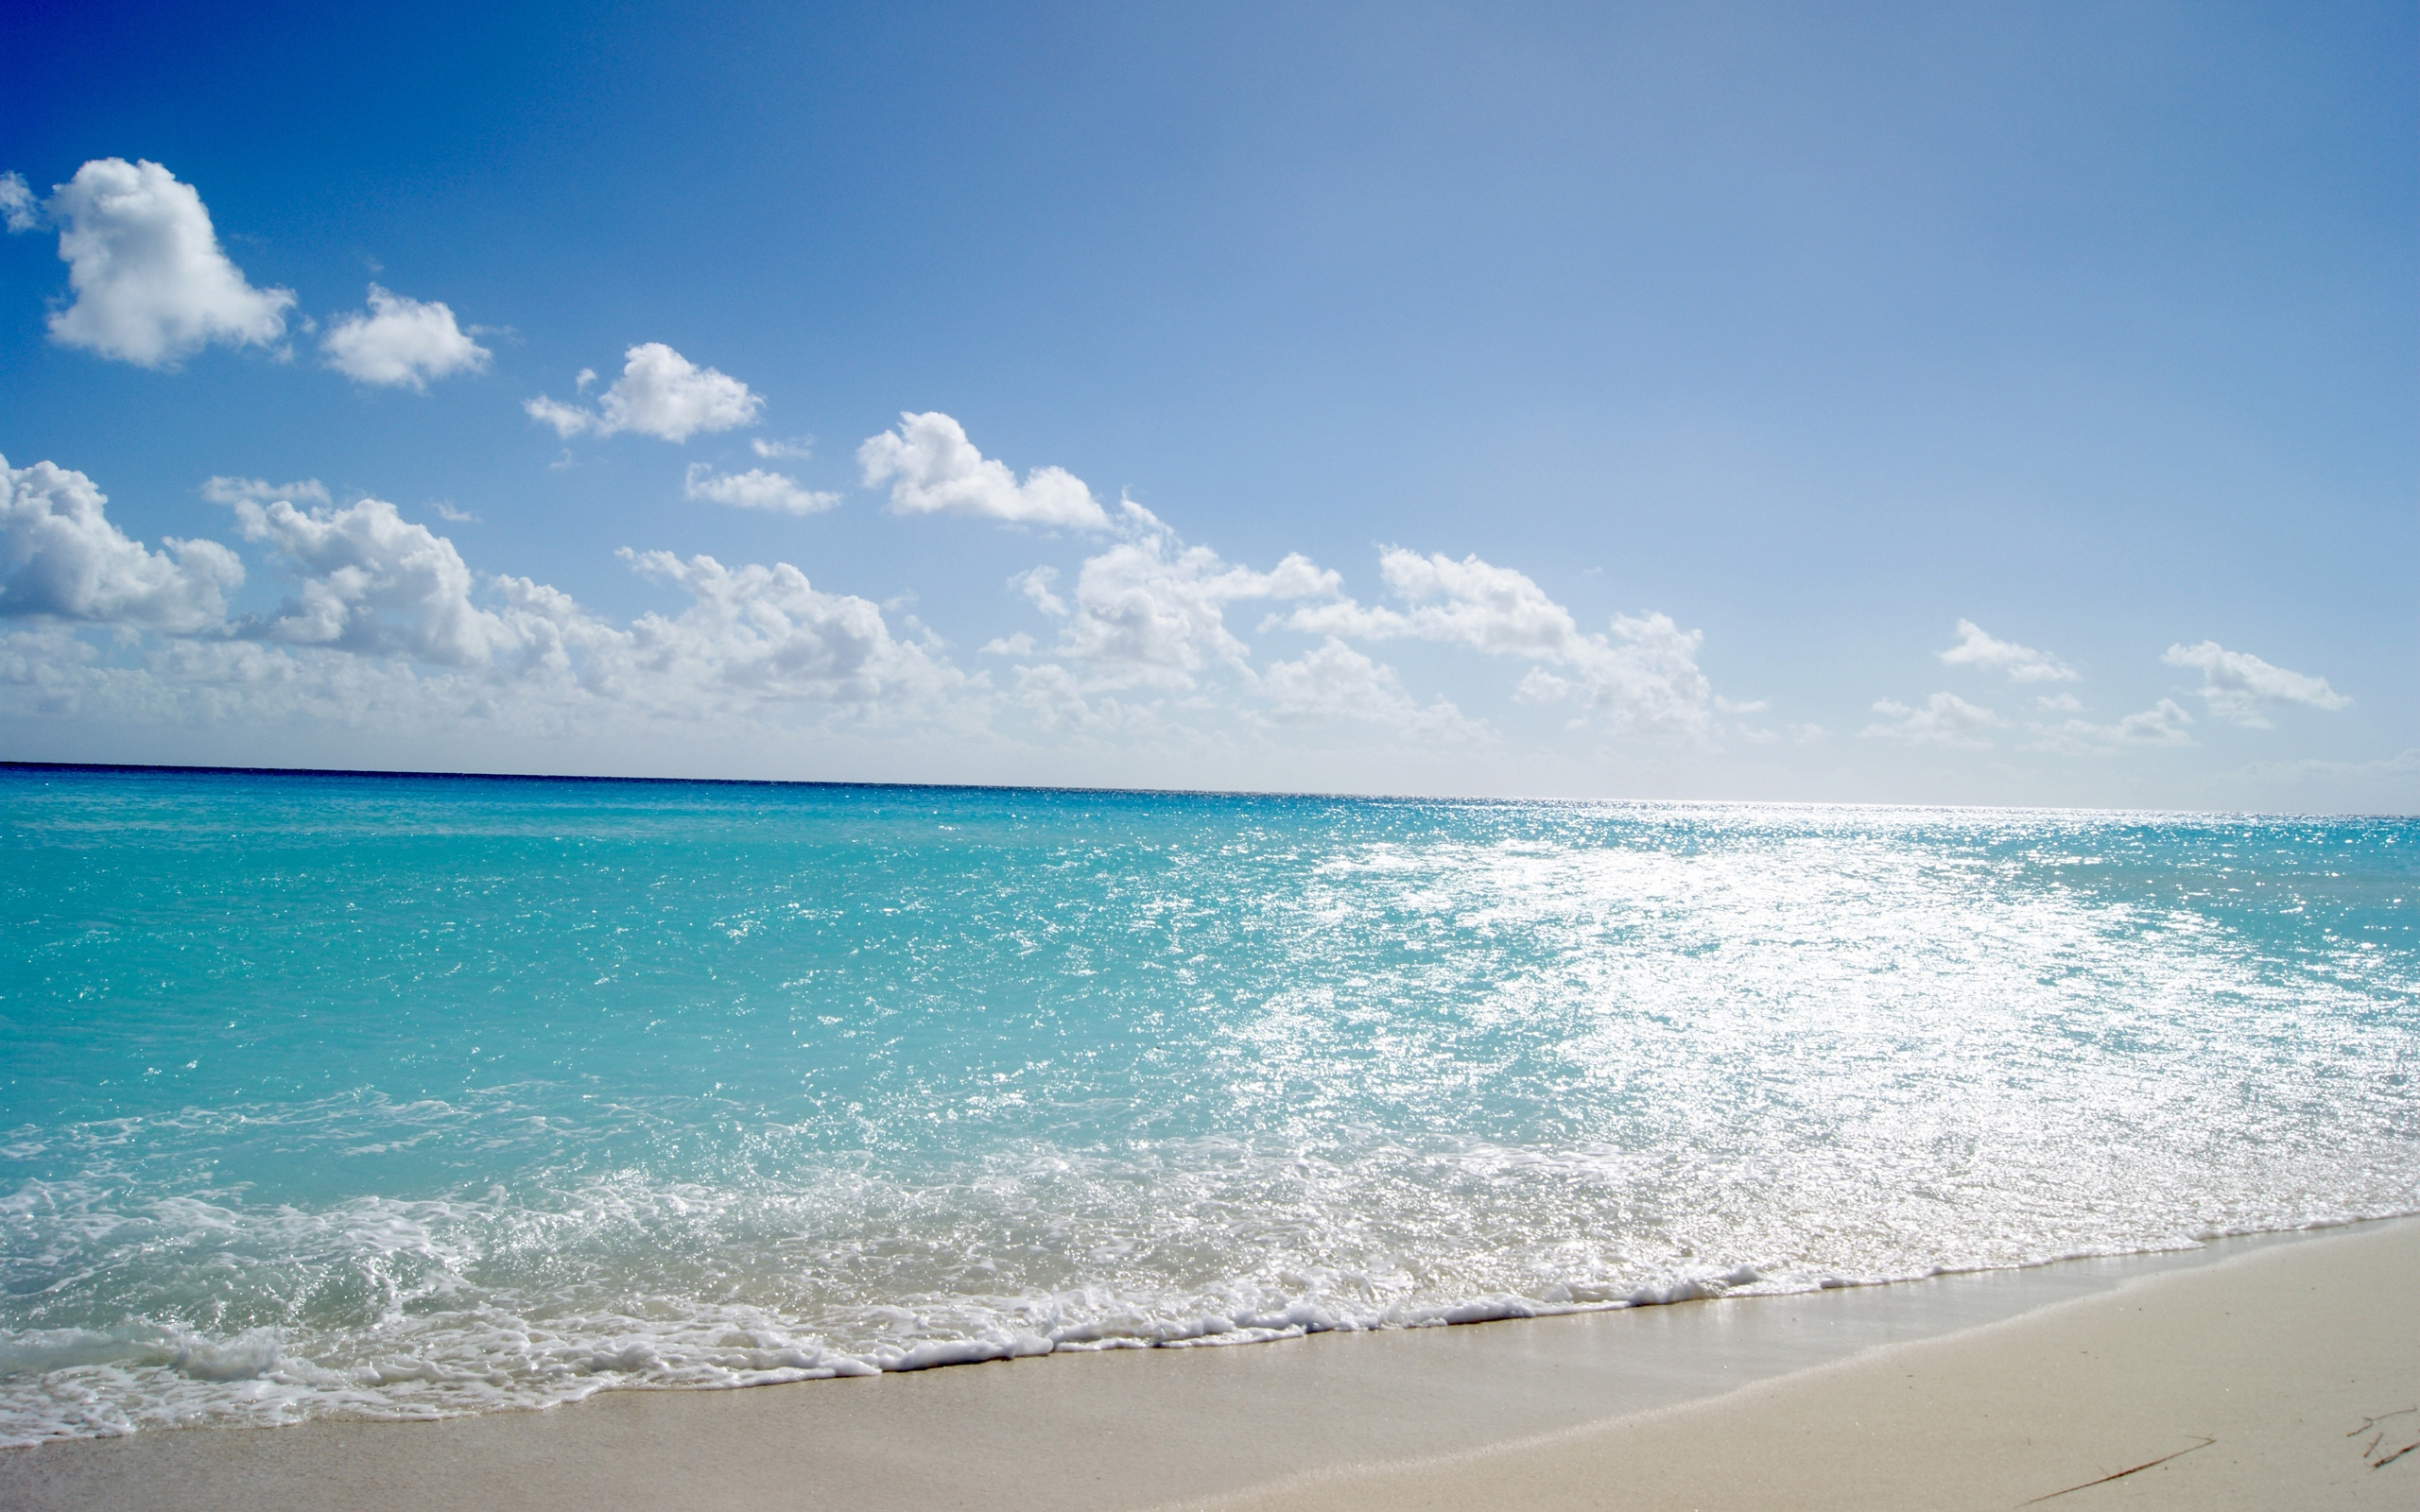 Hd Tropical Island Beach Paradise Wallpapers And Backgrounds: 300 Free Widescreen Wallpapers 2560x1600 [part 9]